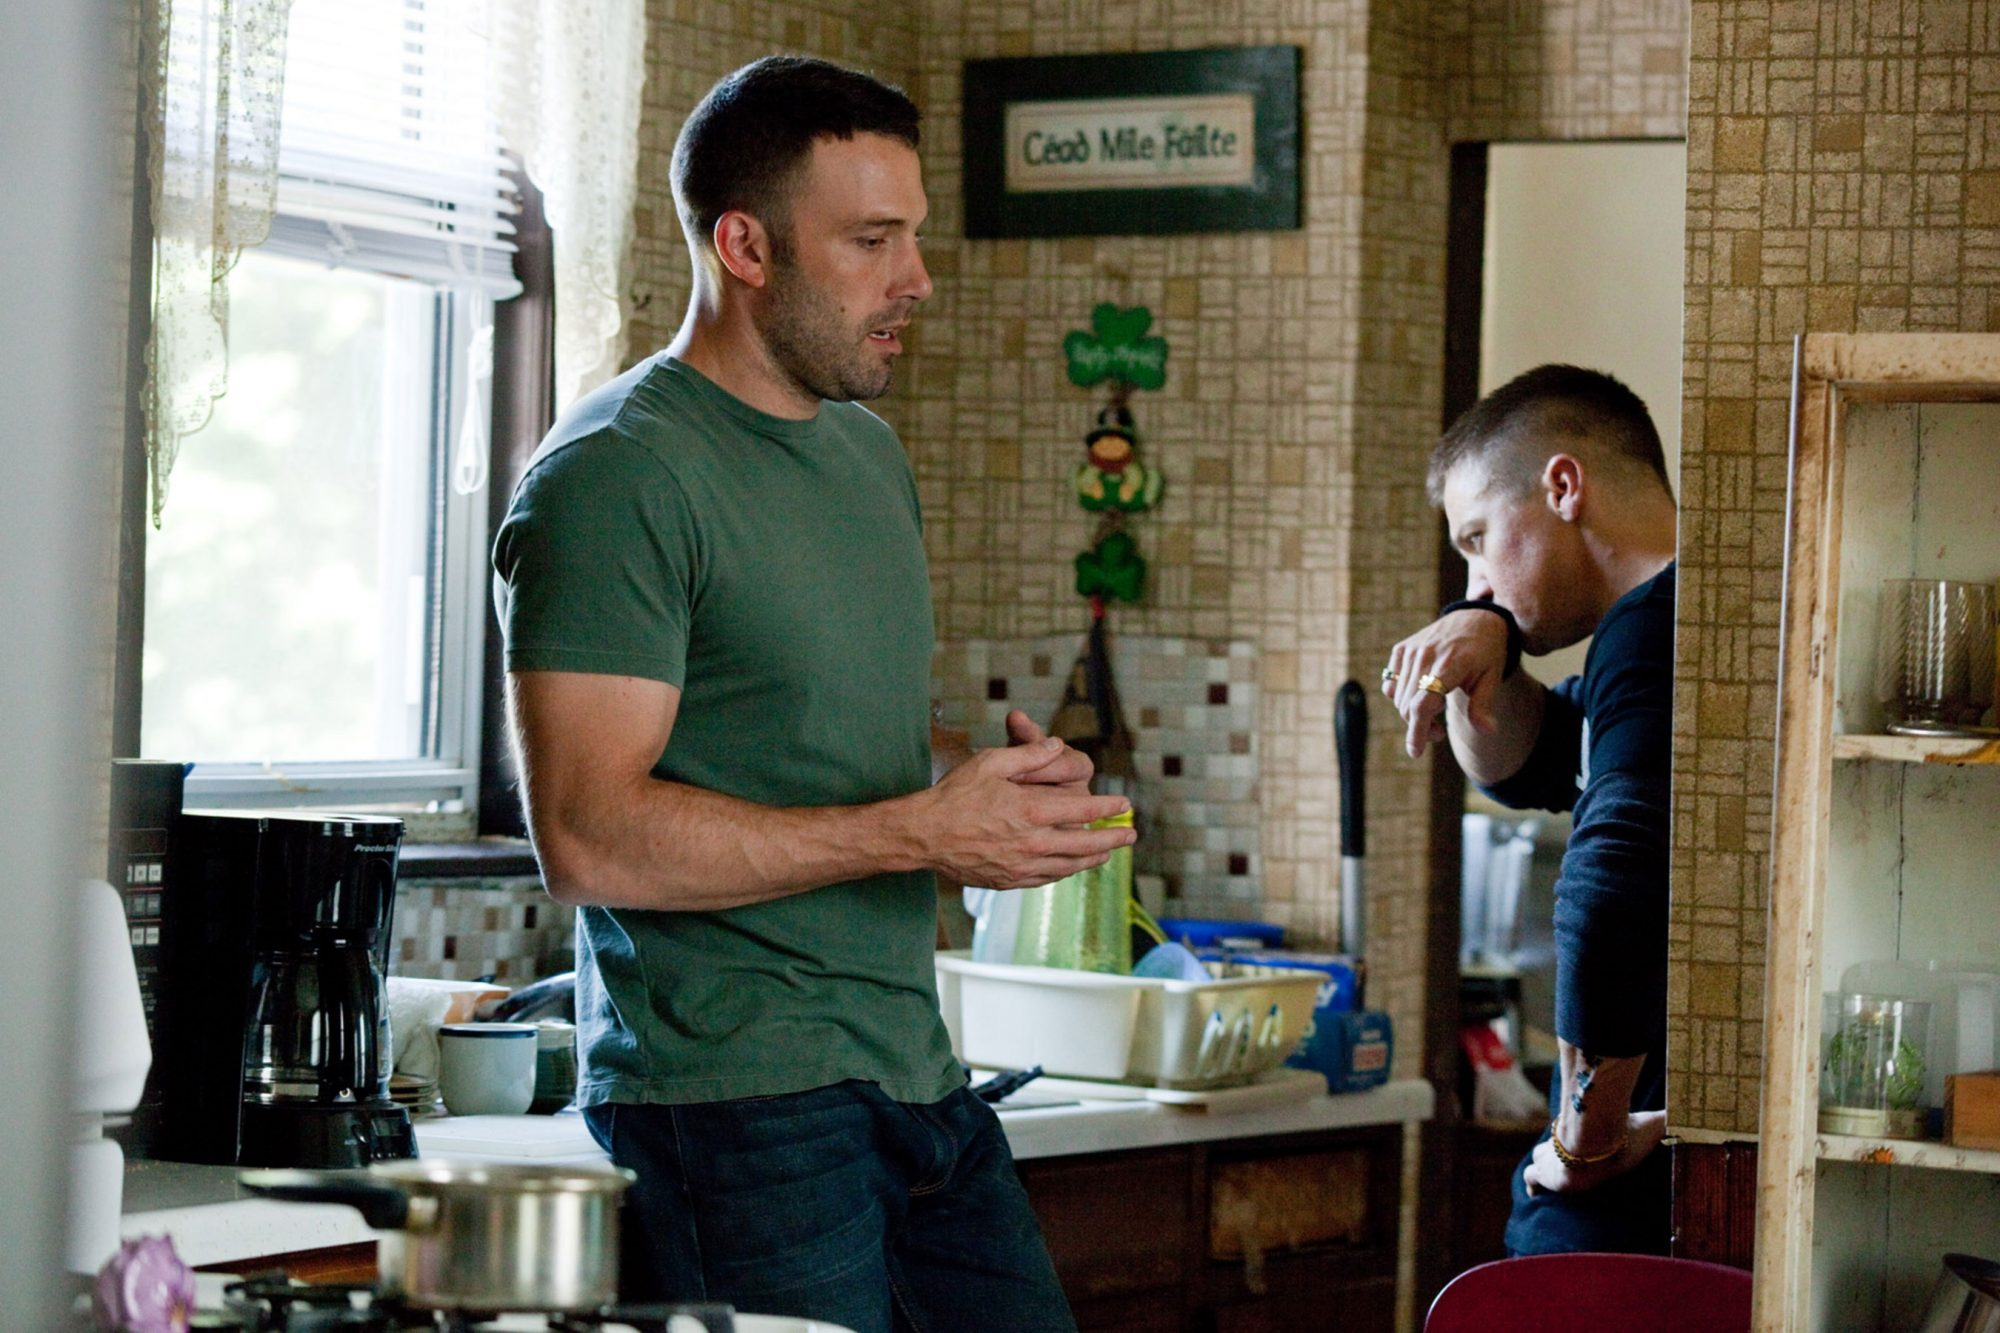 THE TOWN, from left: Ben Affleck, Jeremy Renner, 2010. Ph: Claire Folger/©Warner Brothers/courtesy E